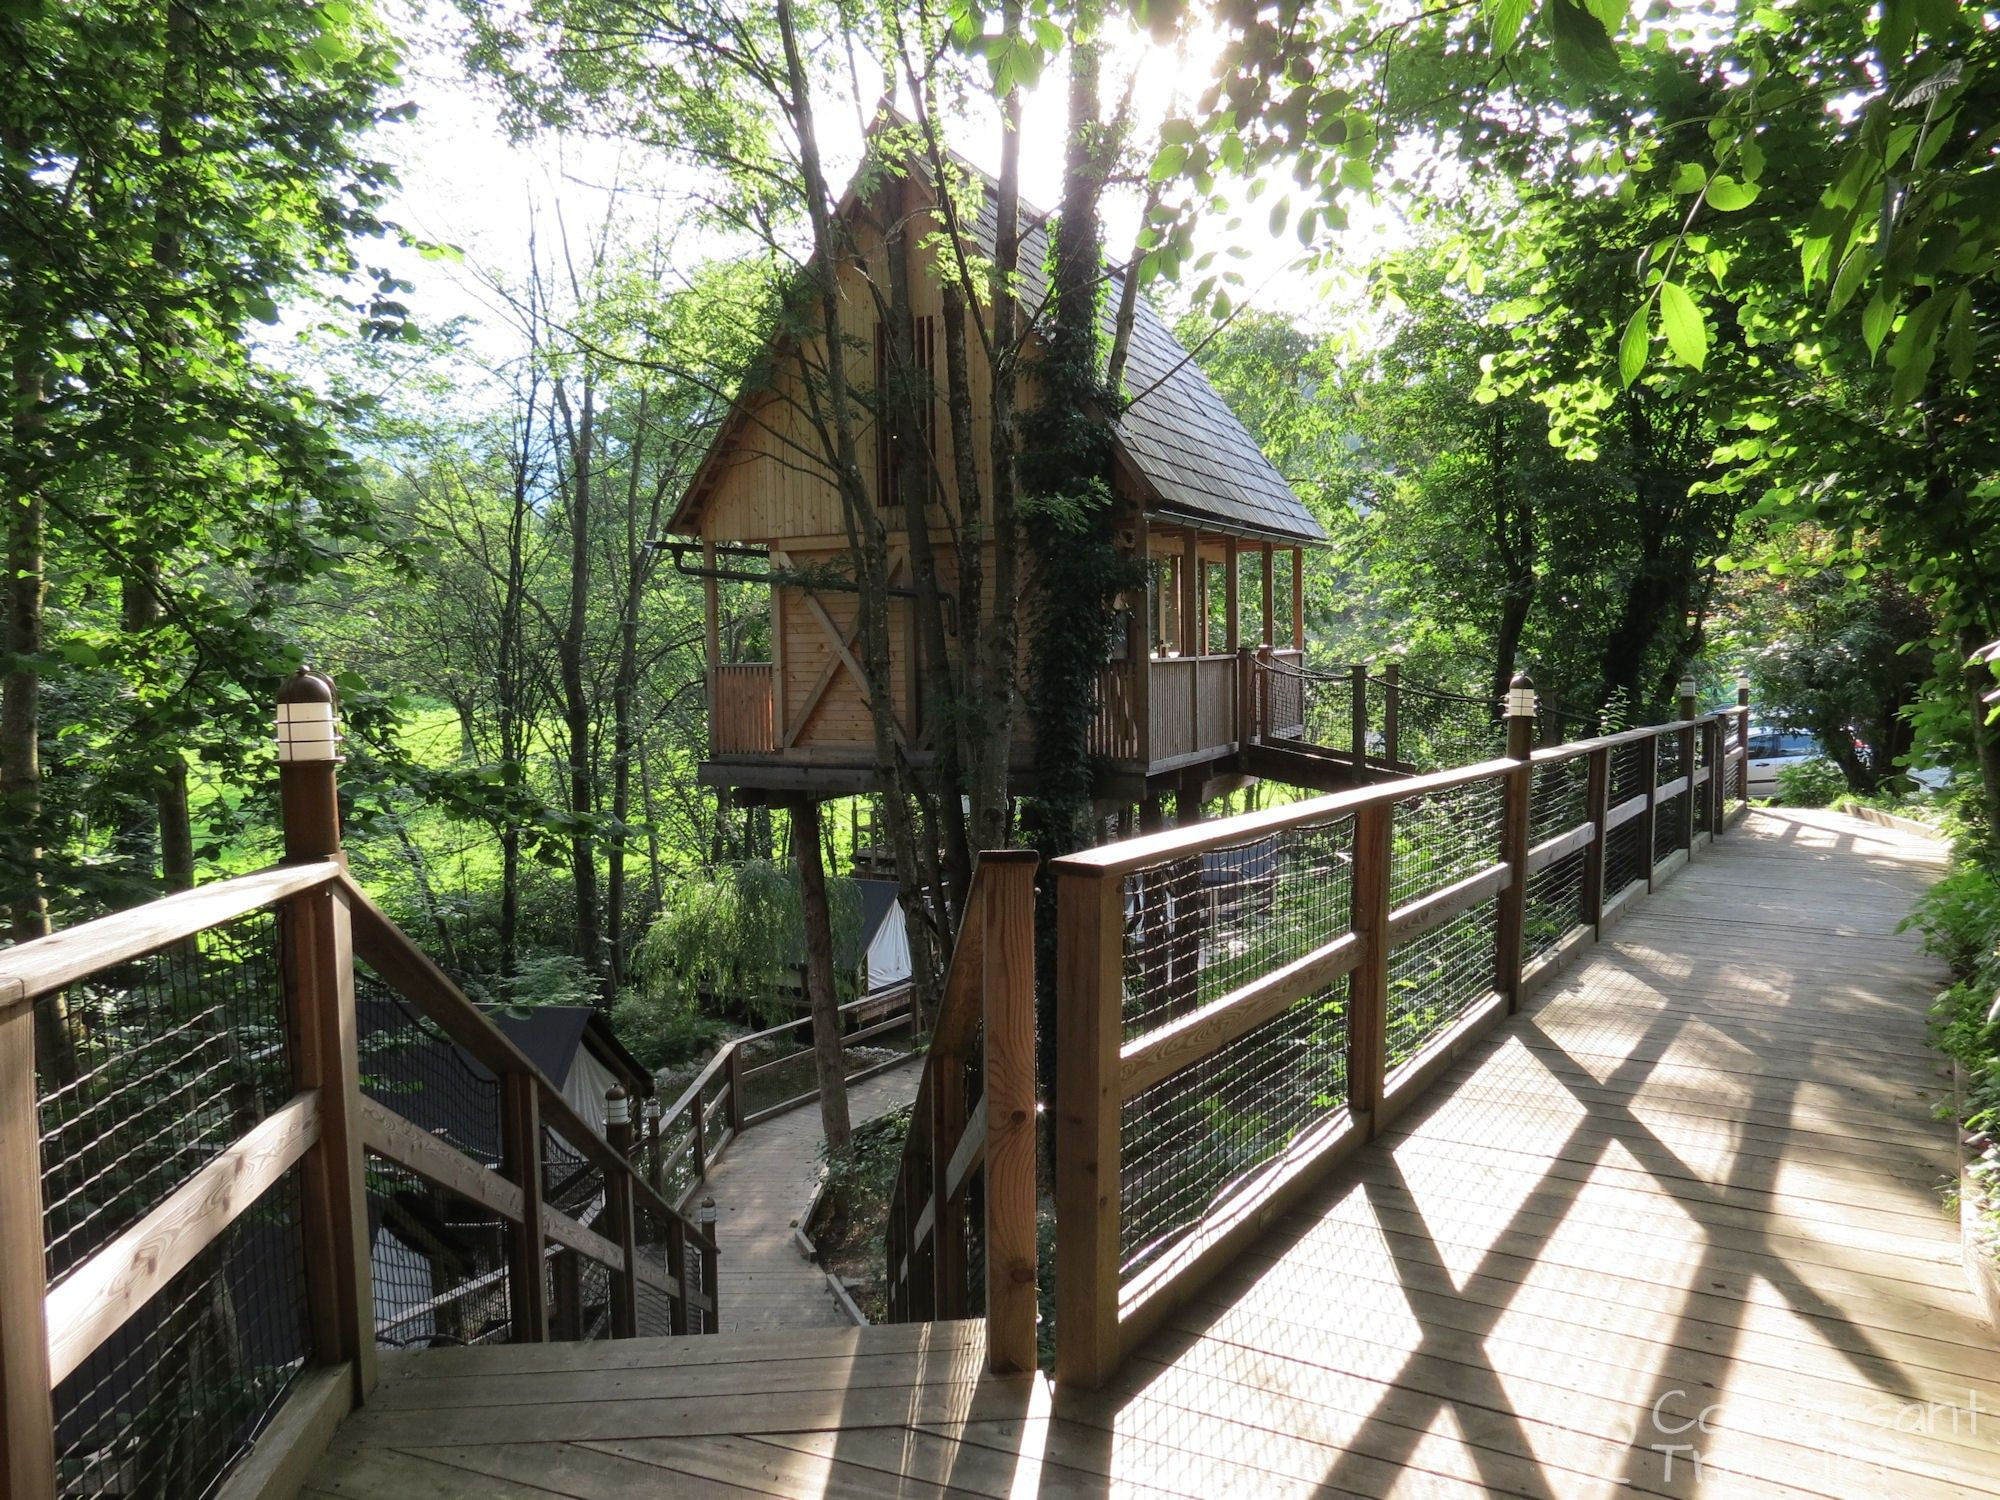 Cool Treehouse Sleeping At Garden Village Bled | Bled Slovenia And Slovenia in Garden Village Lake Bled